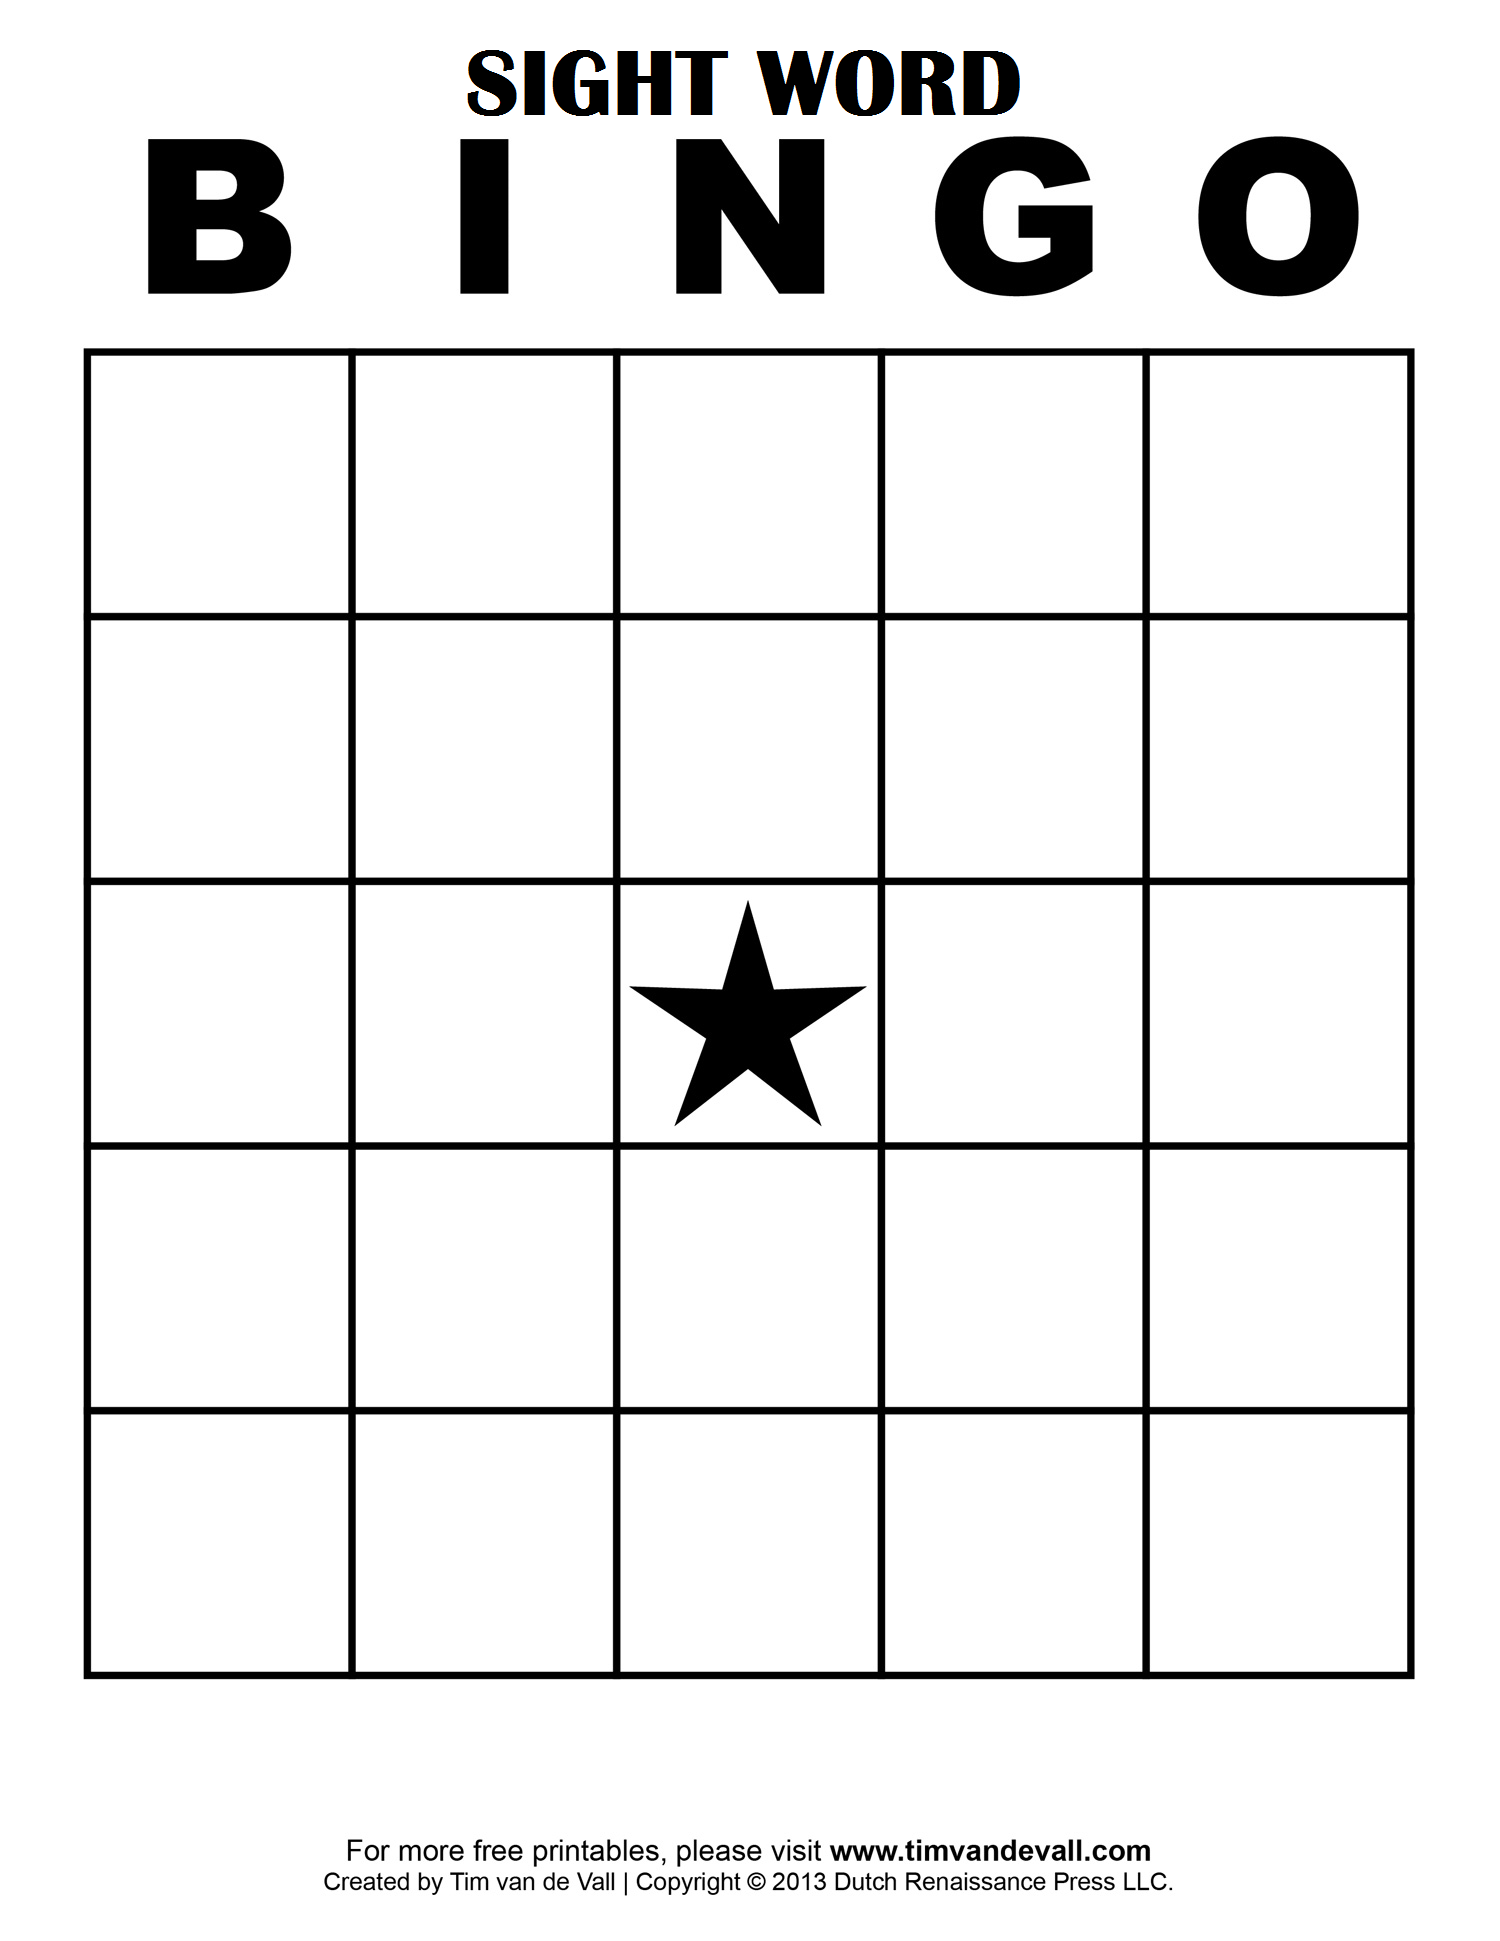 Free Bingo Cards, Bingo Card Template